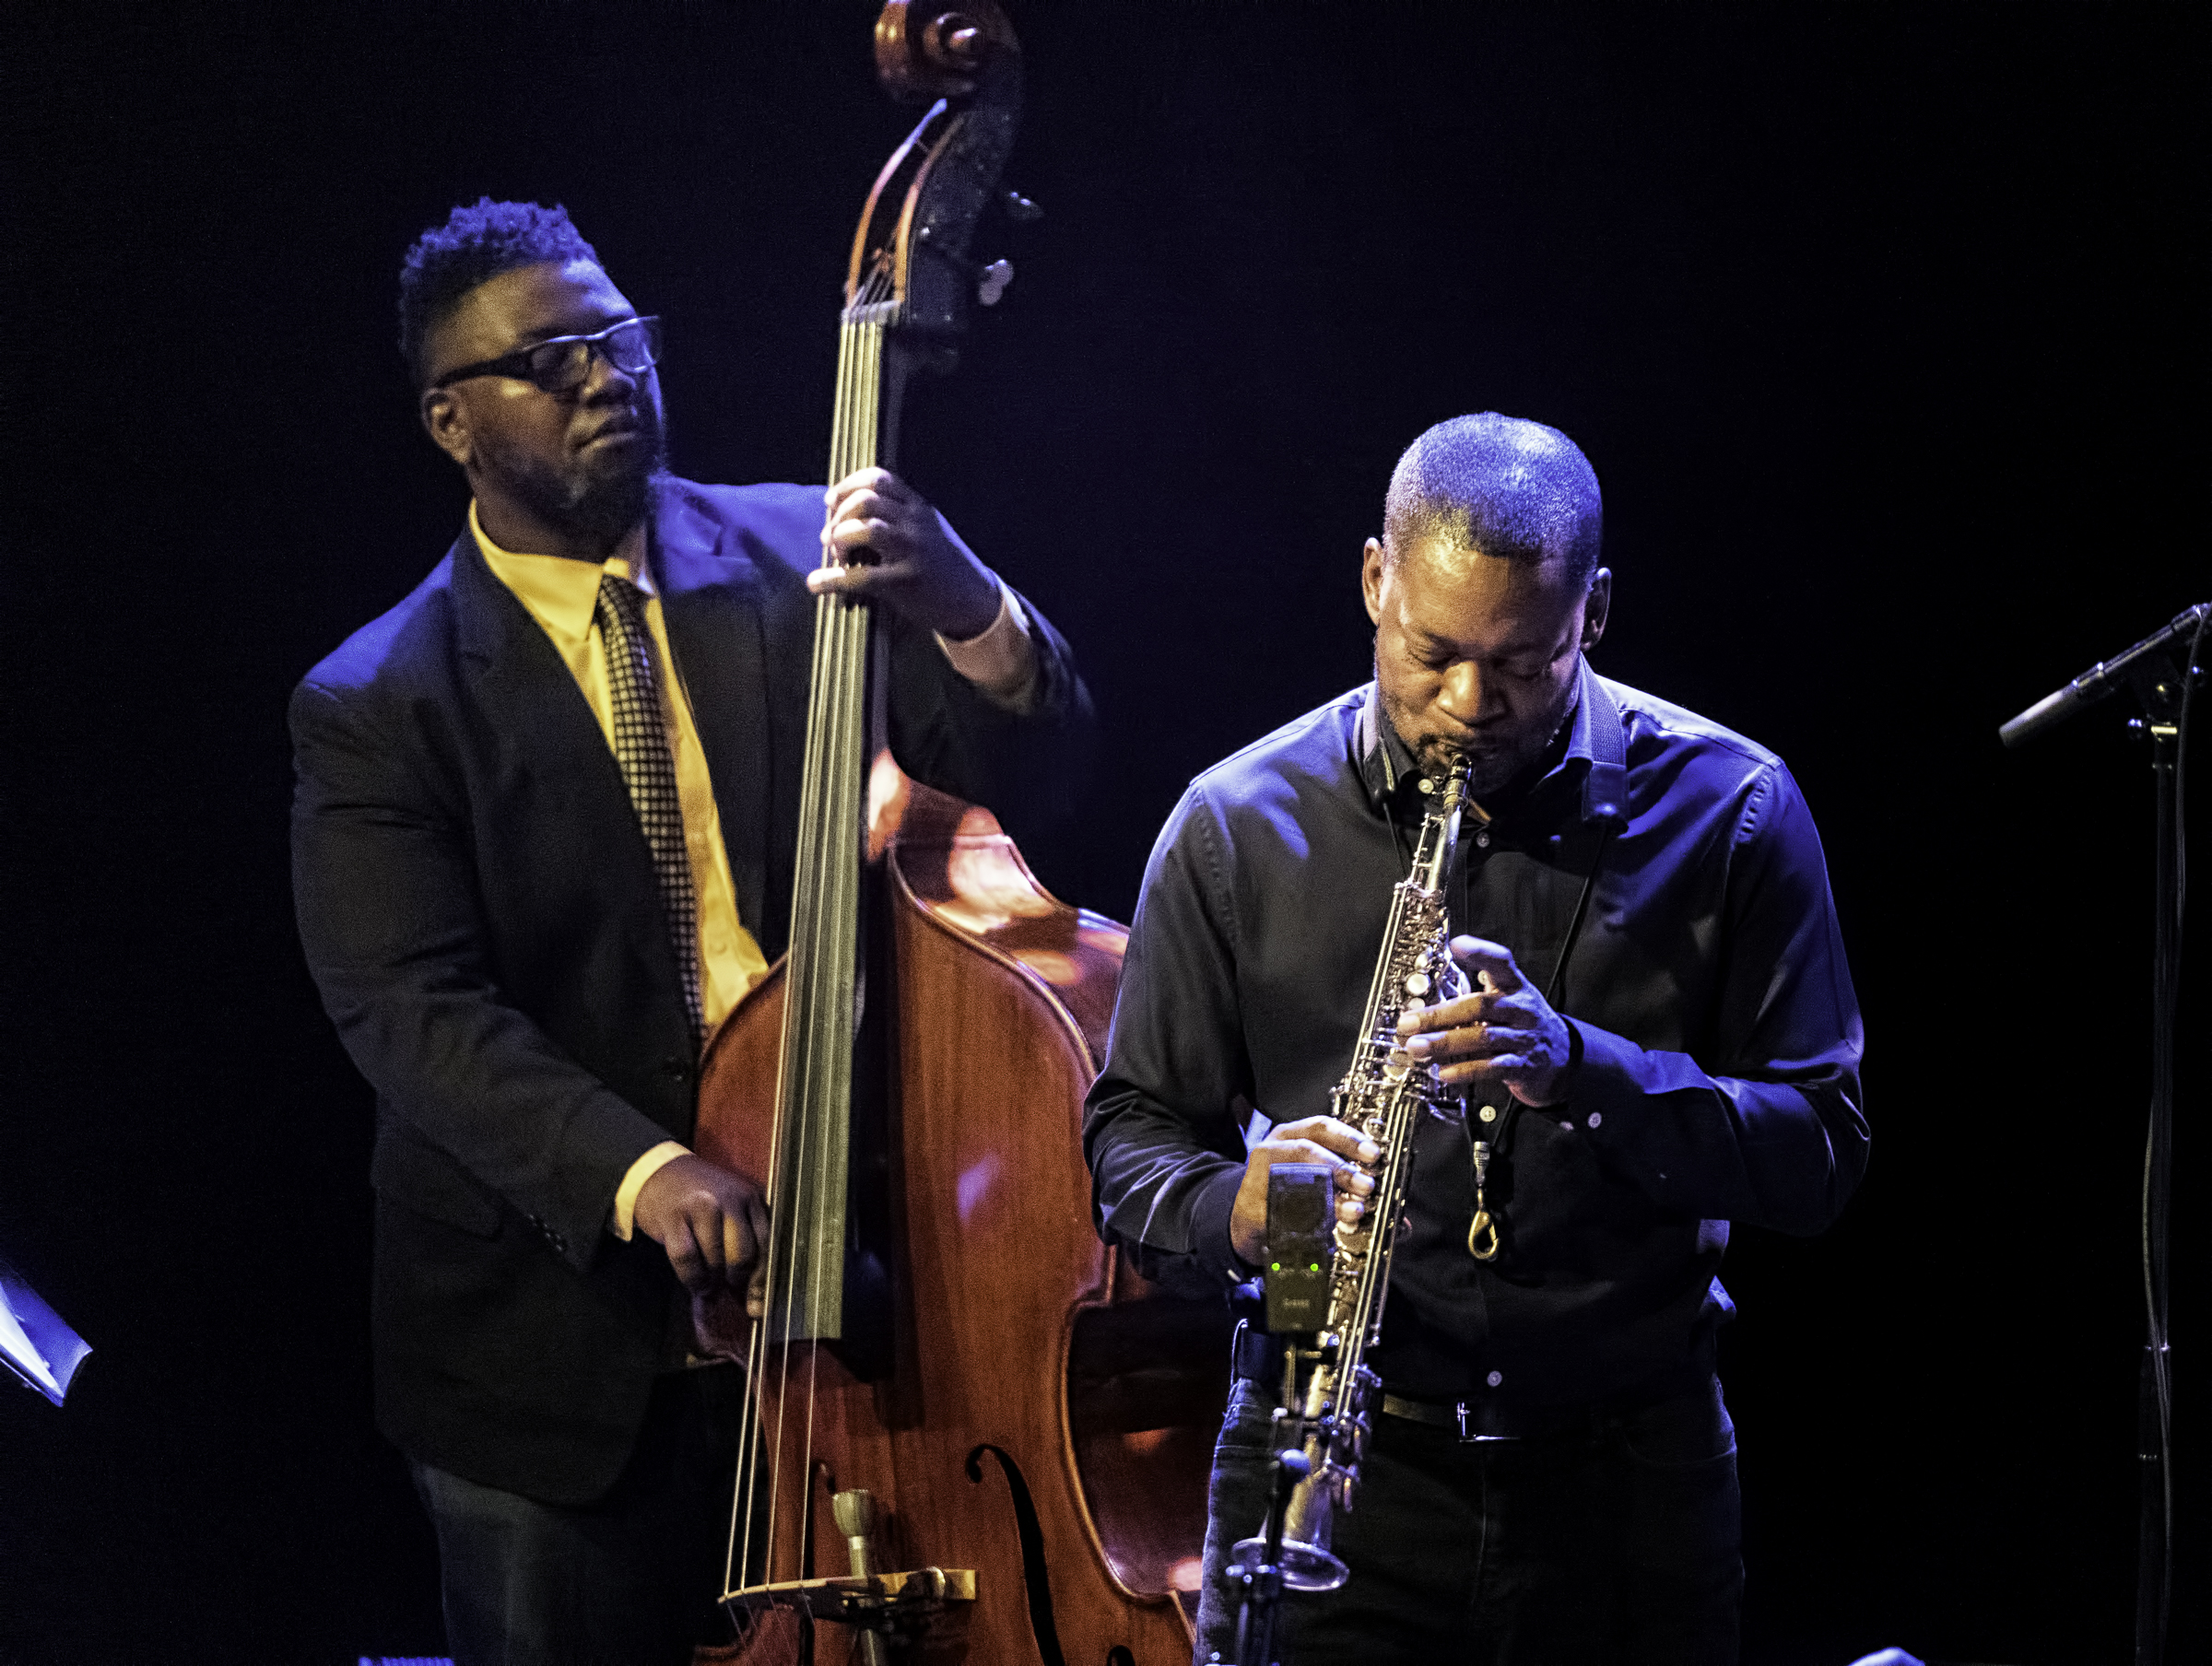 Dezron Douglas and Ravi Coltrane with the Void at The Montreal International Jazz Festival 2017